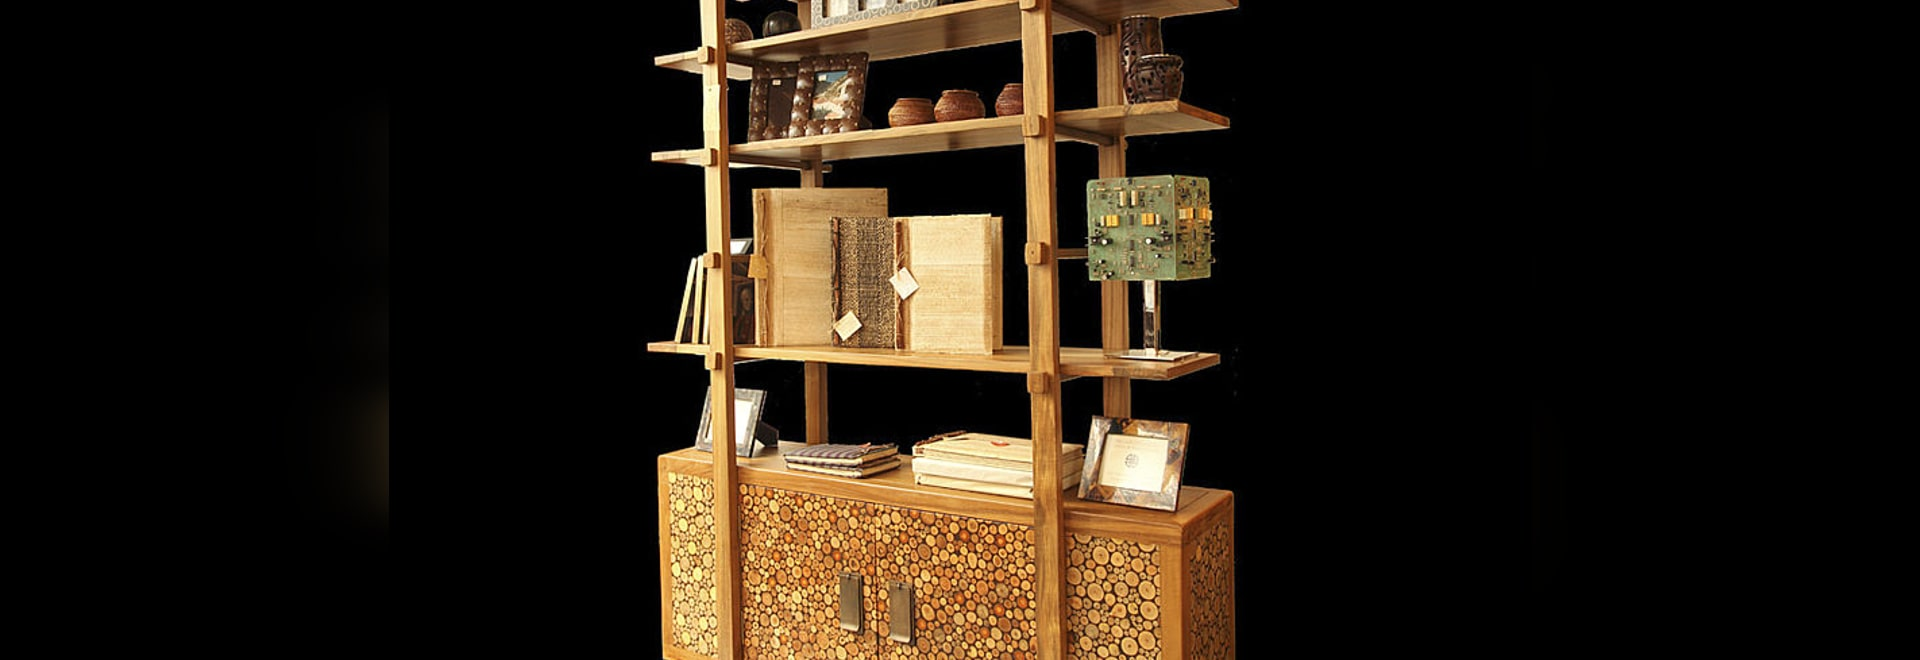 Open Ended Shelving Unit with Mosaic Cabinet.